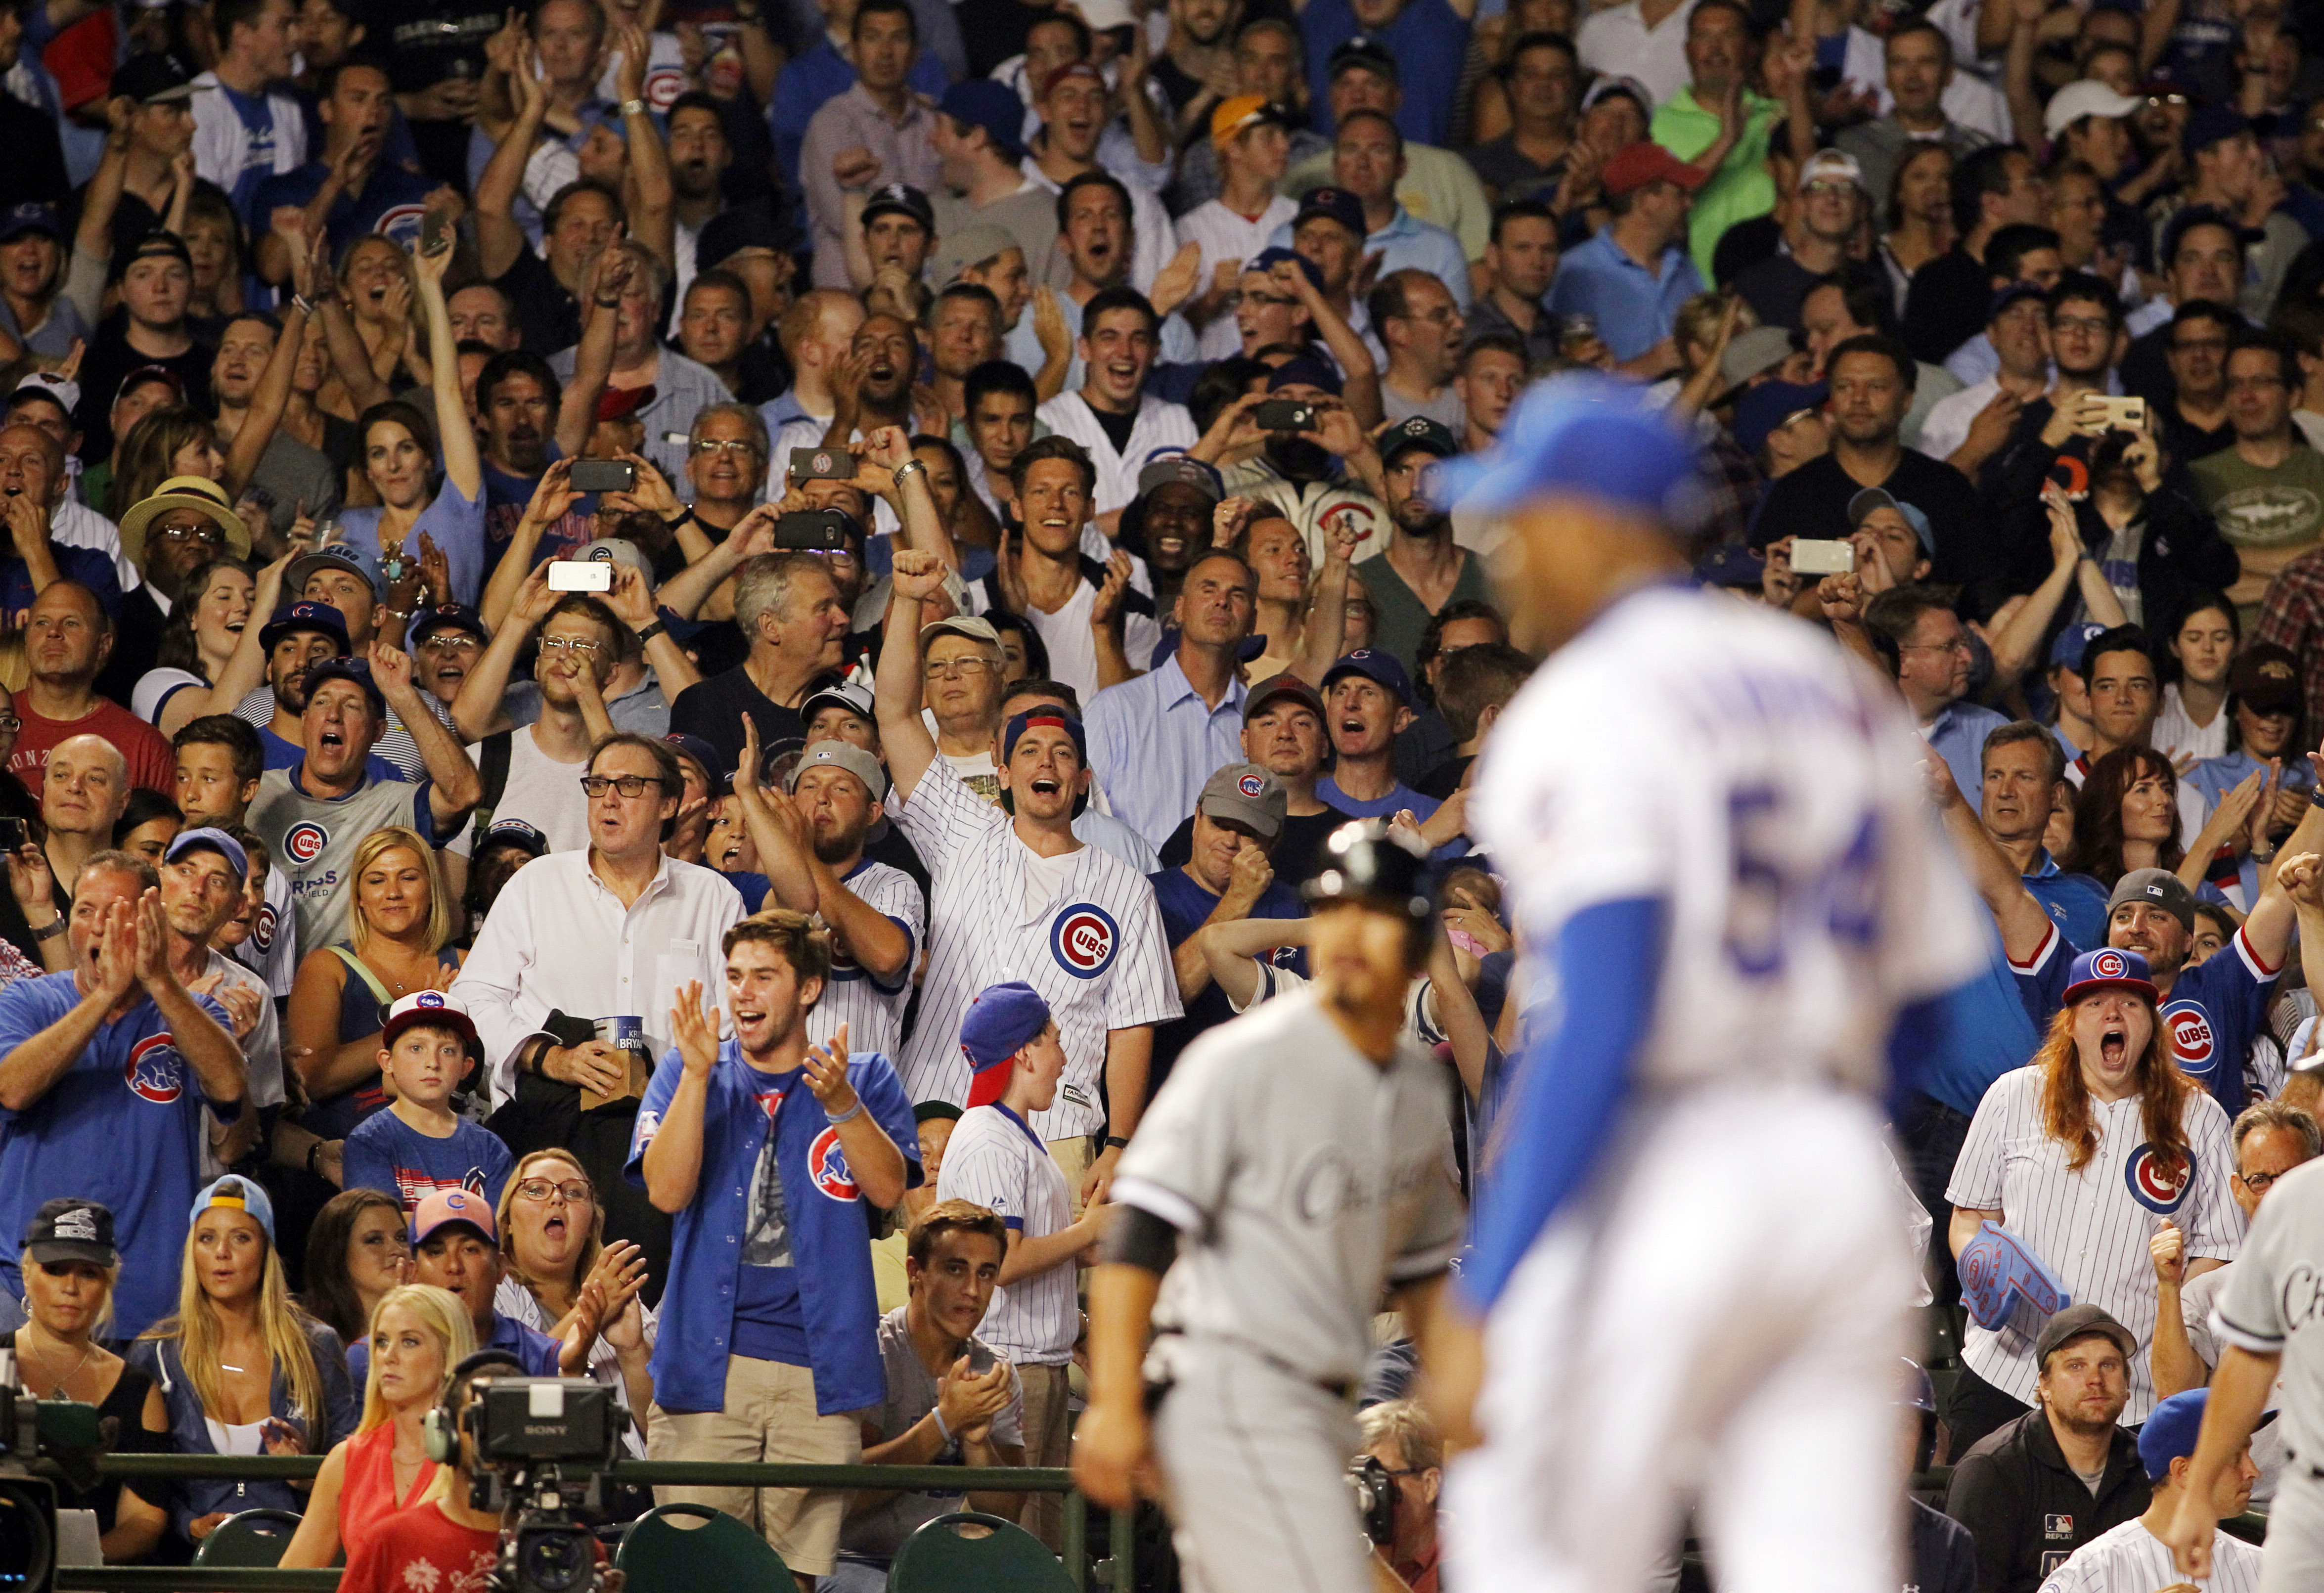 Fans celebrate during a Chicago Cubs game against the Chicago White Sox at Wrigley Field. (Reuters)